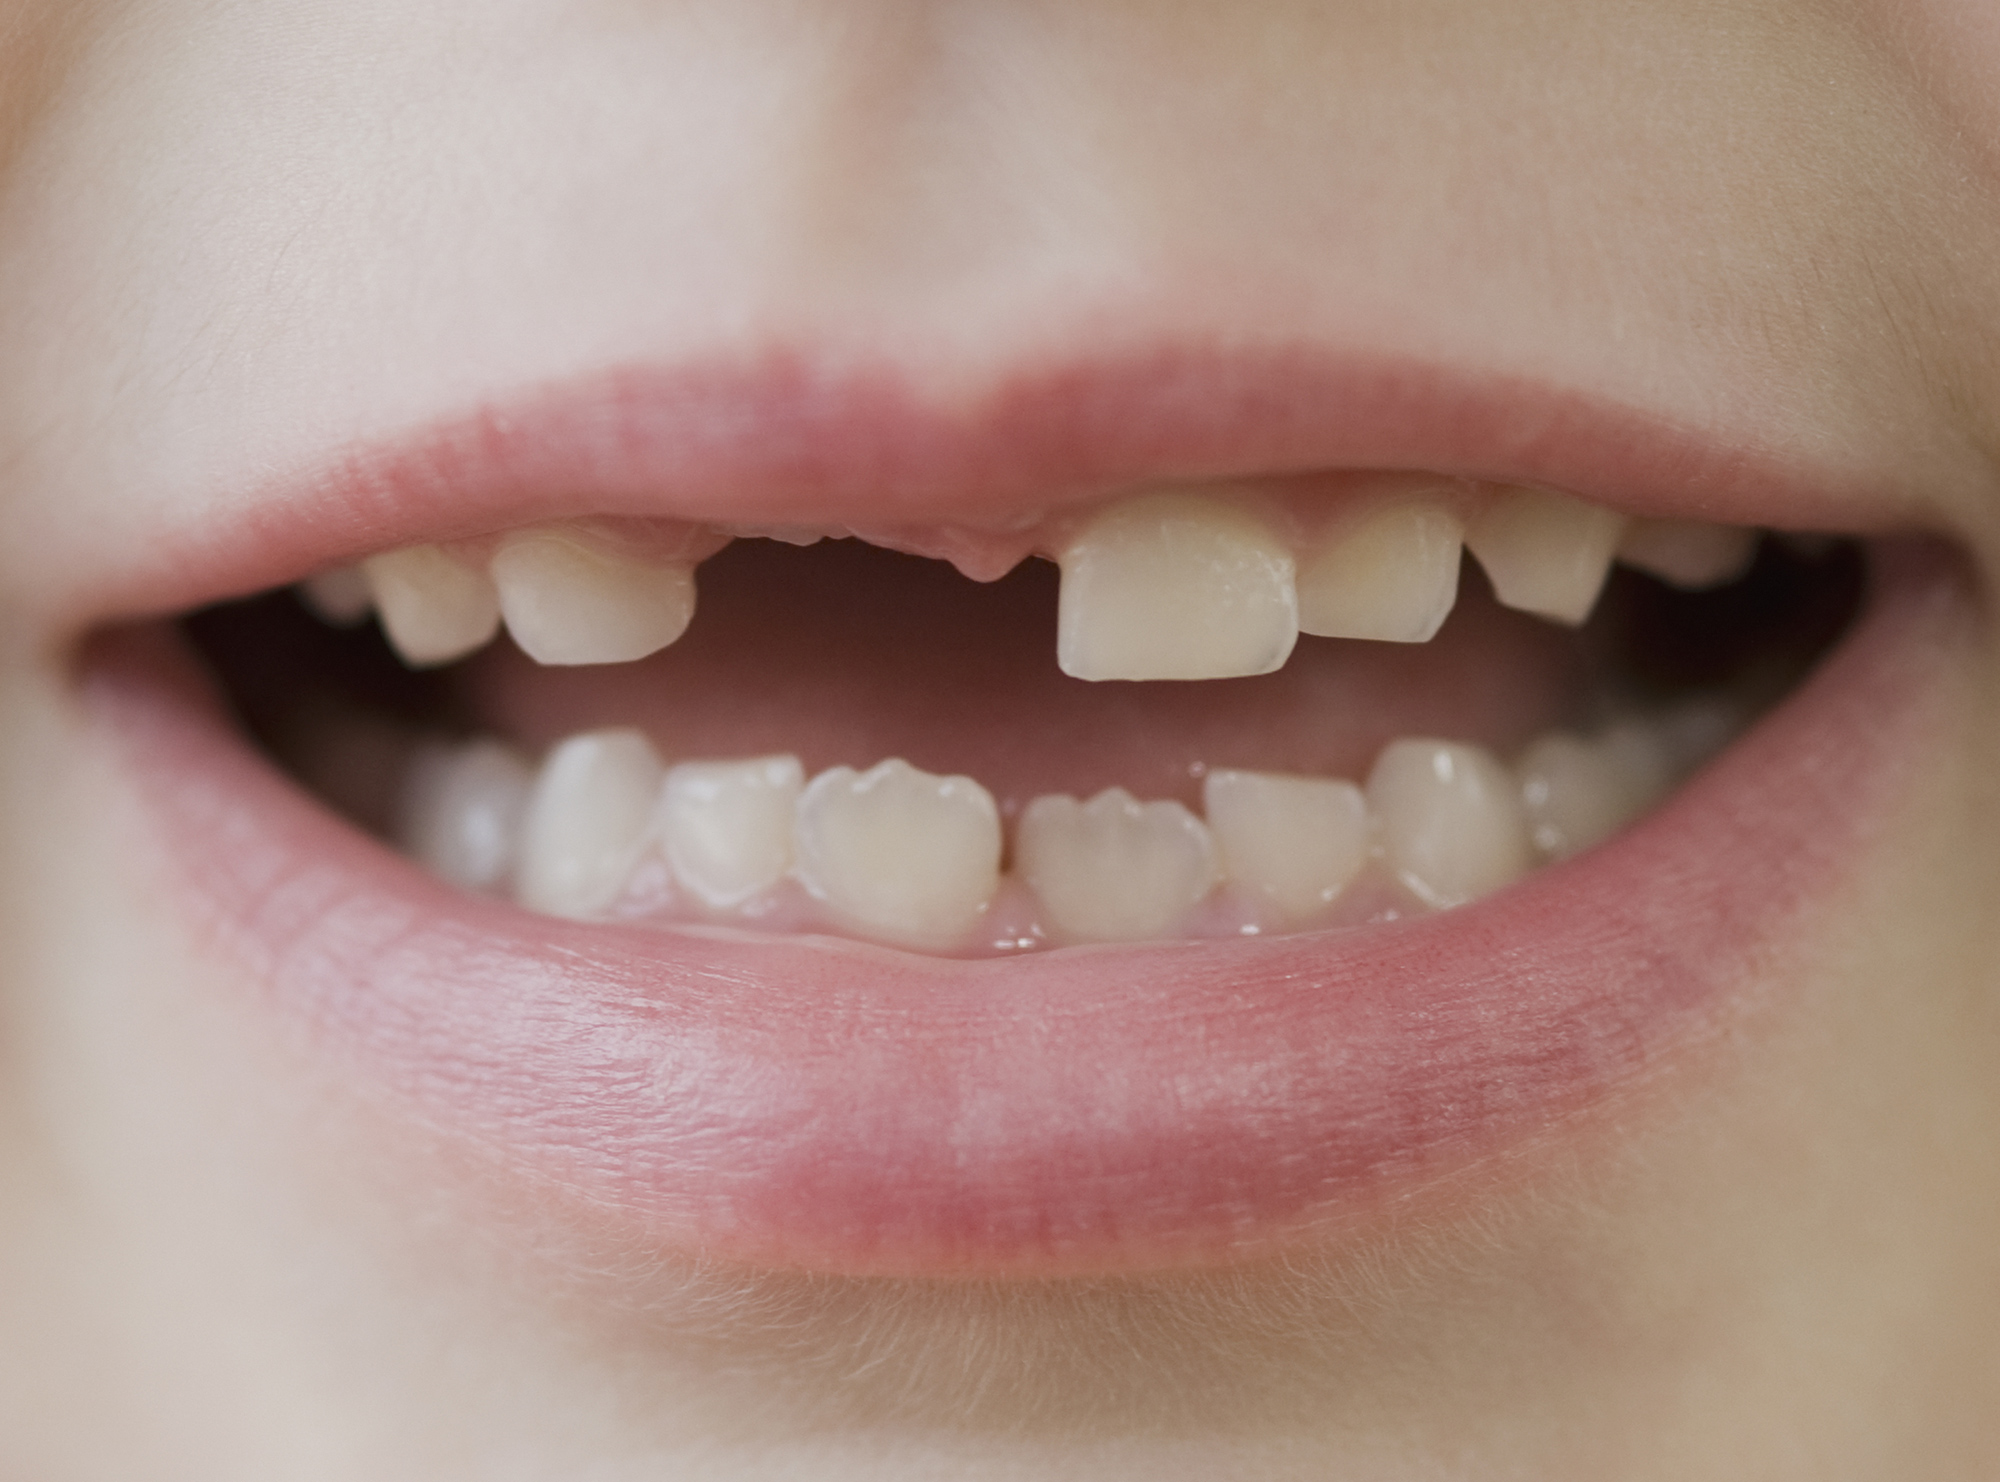 Does Doxycycline Cause Tooth Discoloration in Younger